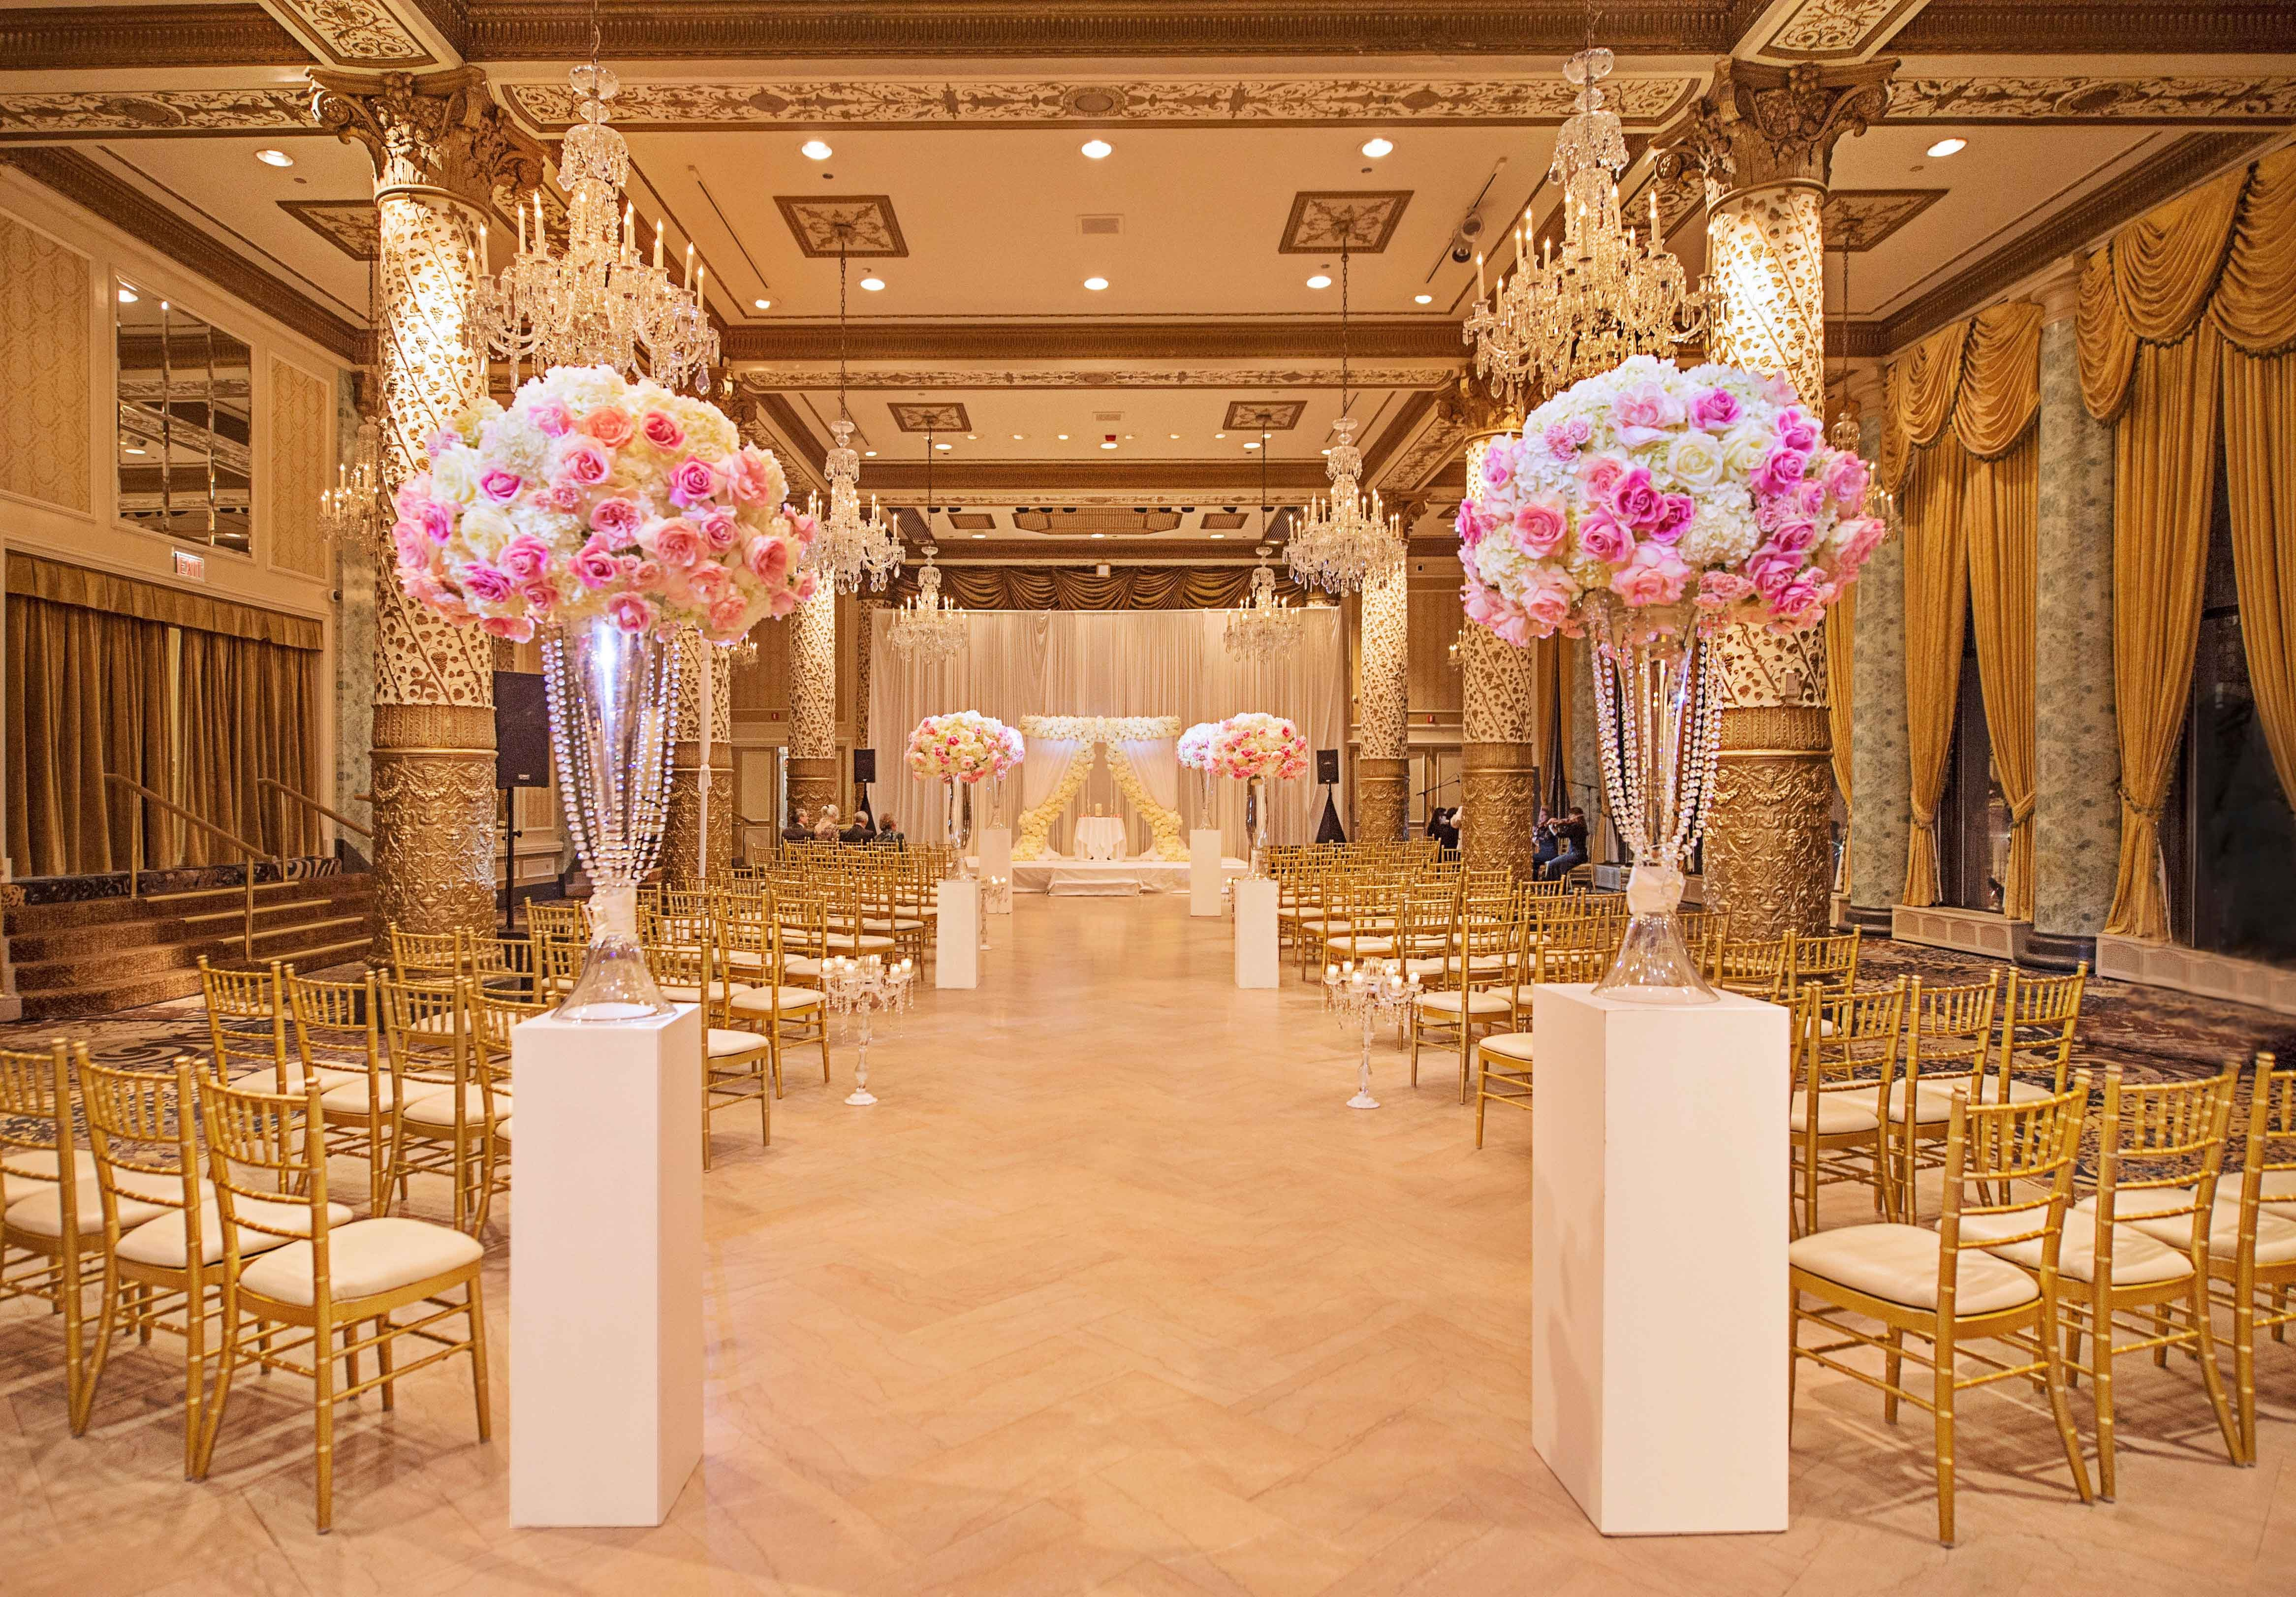 Pink and White Wedding Decor Beautiful Wedding Color Palette Pink and Gold Wedding Ideas Inside Weddings